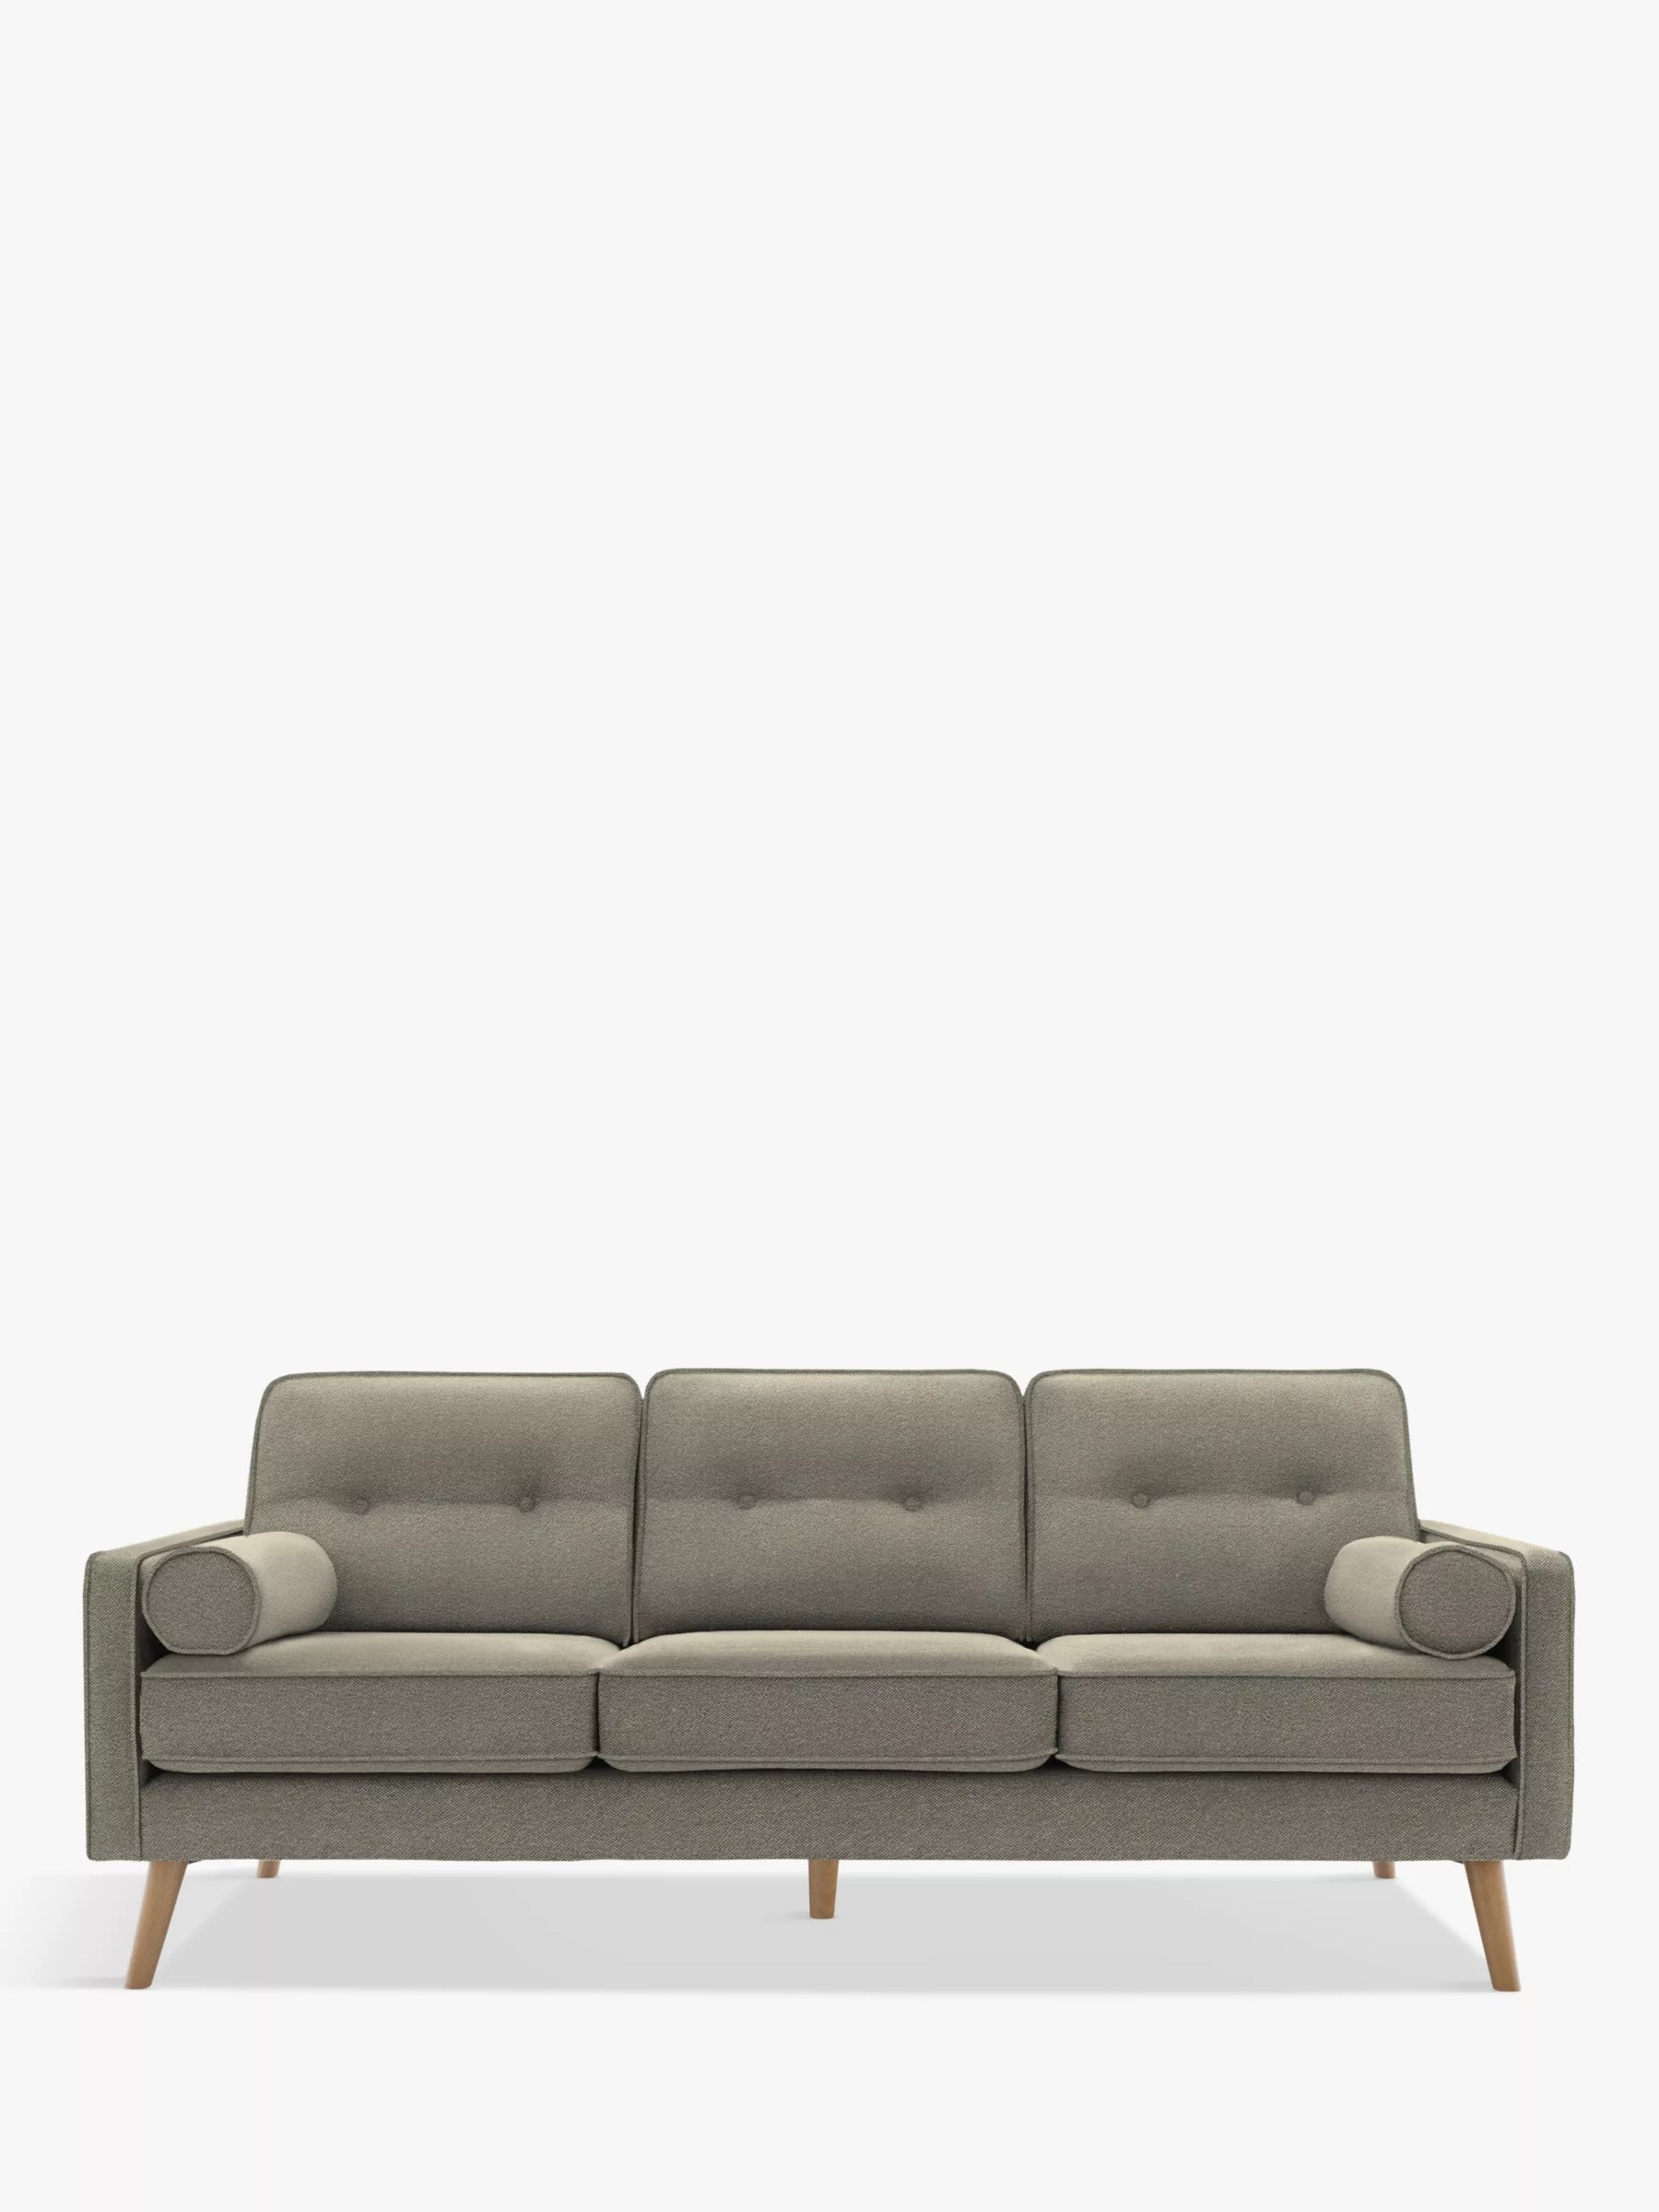 Bettsofa Vintage G Plan Vintage The Sixty Five Large 3 Seater Sofa At John Lewis